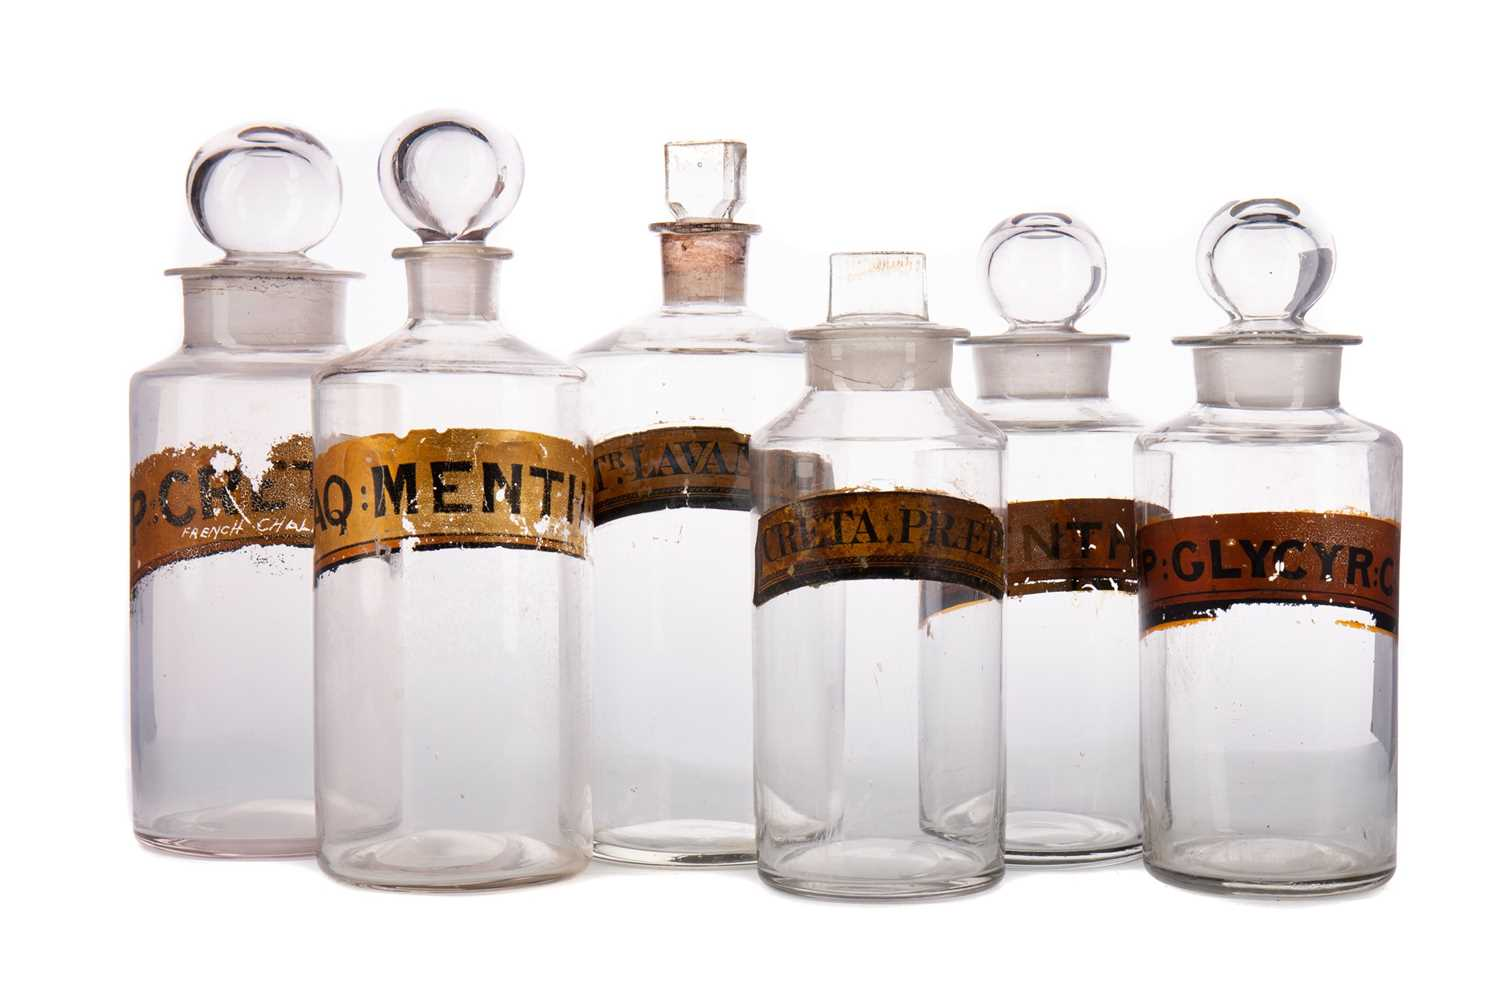 Lot 1142 - FIFTEEN LATE 19TH CENTURY / EARLY 20TH CENTURY PHARMACEUTICAL BOTTLES